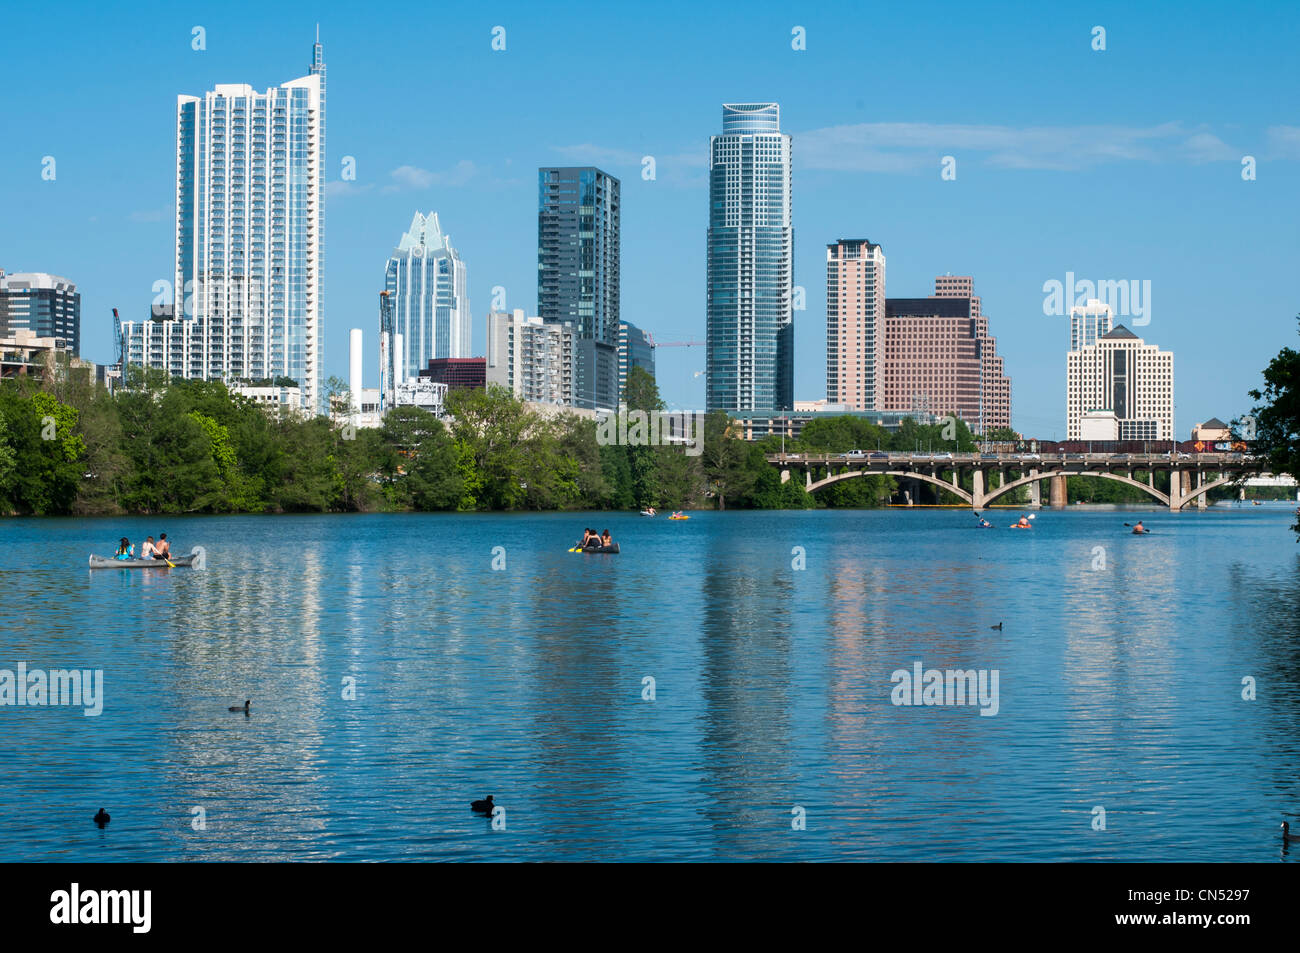 Austin skyline on a sunny afternoon from lou neff point in Zilker Park - Stock Image